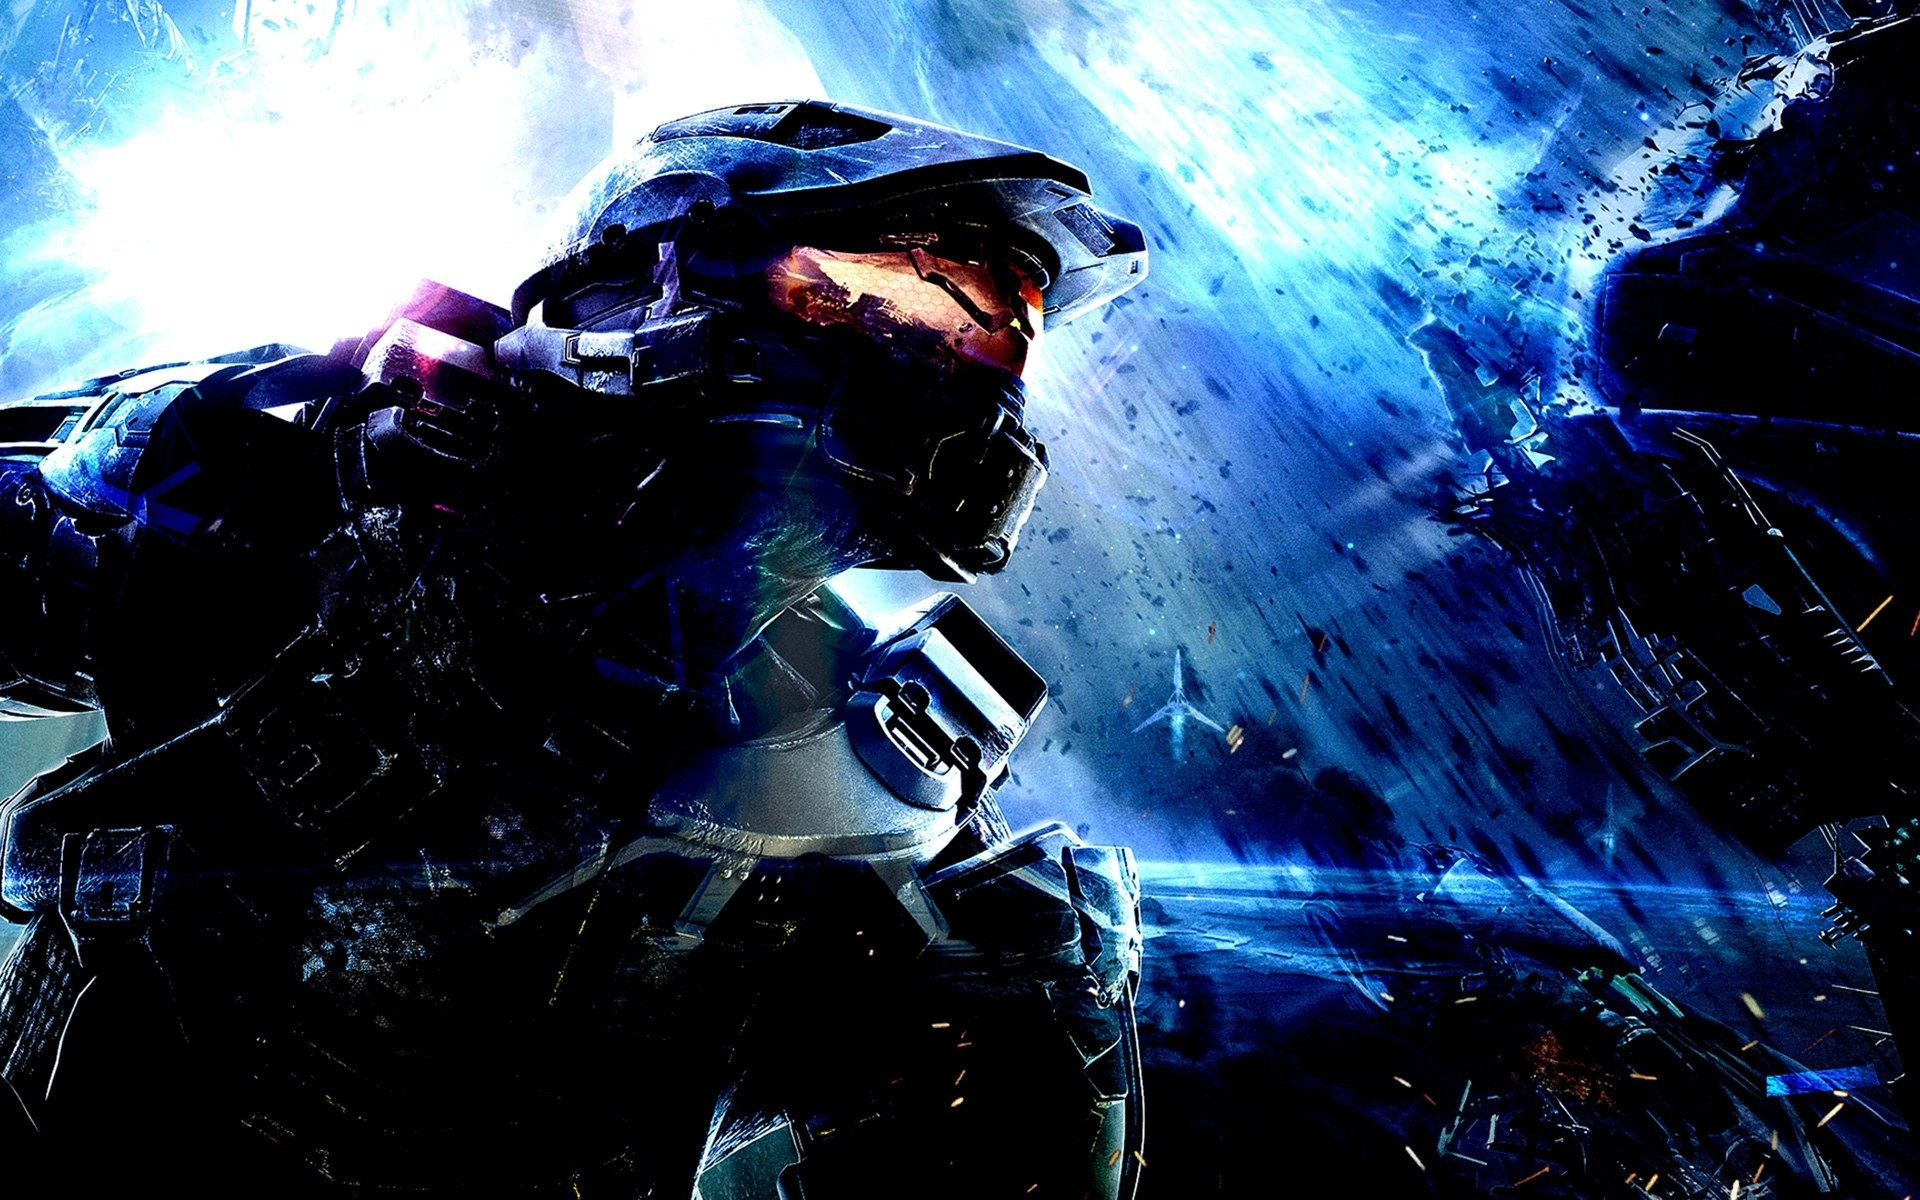 Hd gaming wallpaper 68 pictures - Games hd wallpapers 1920x1200 ...